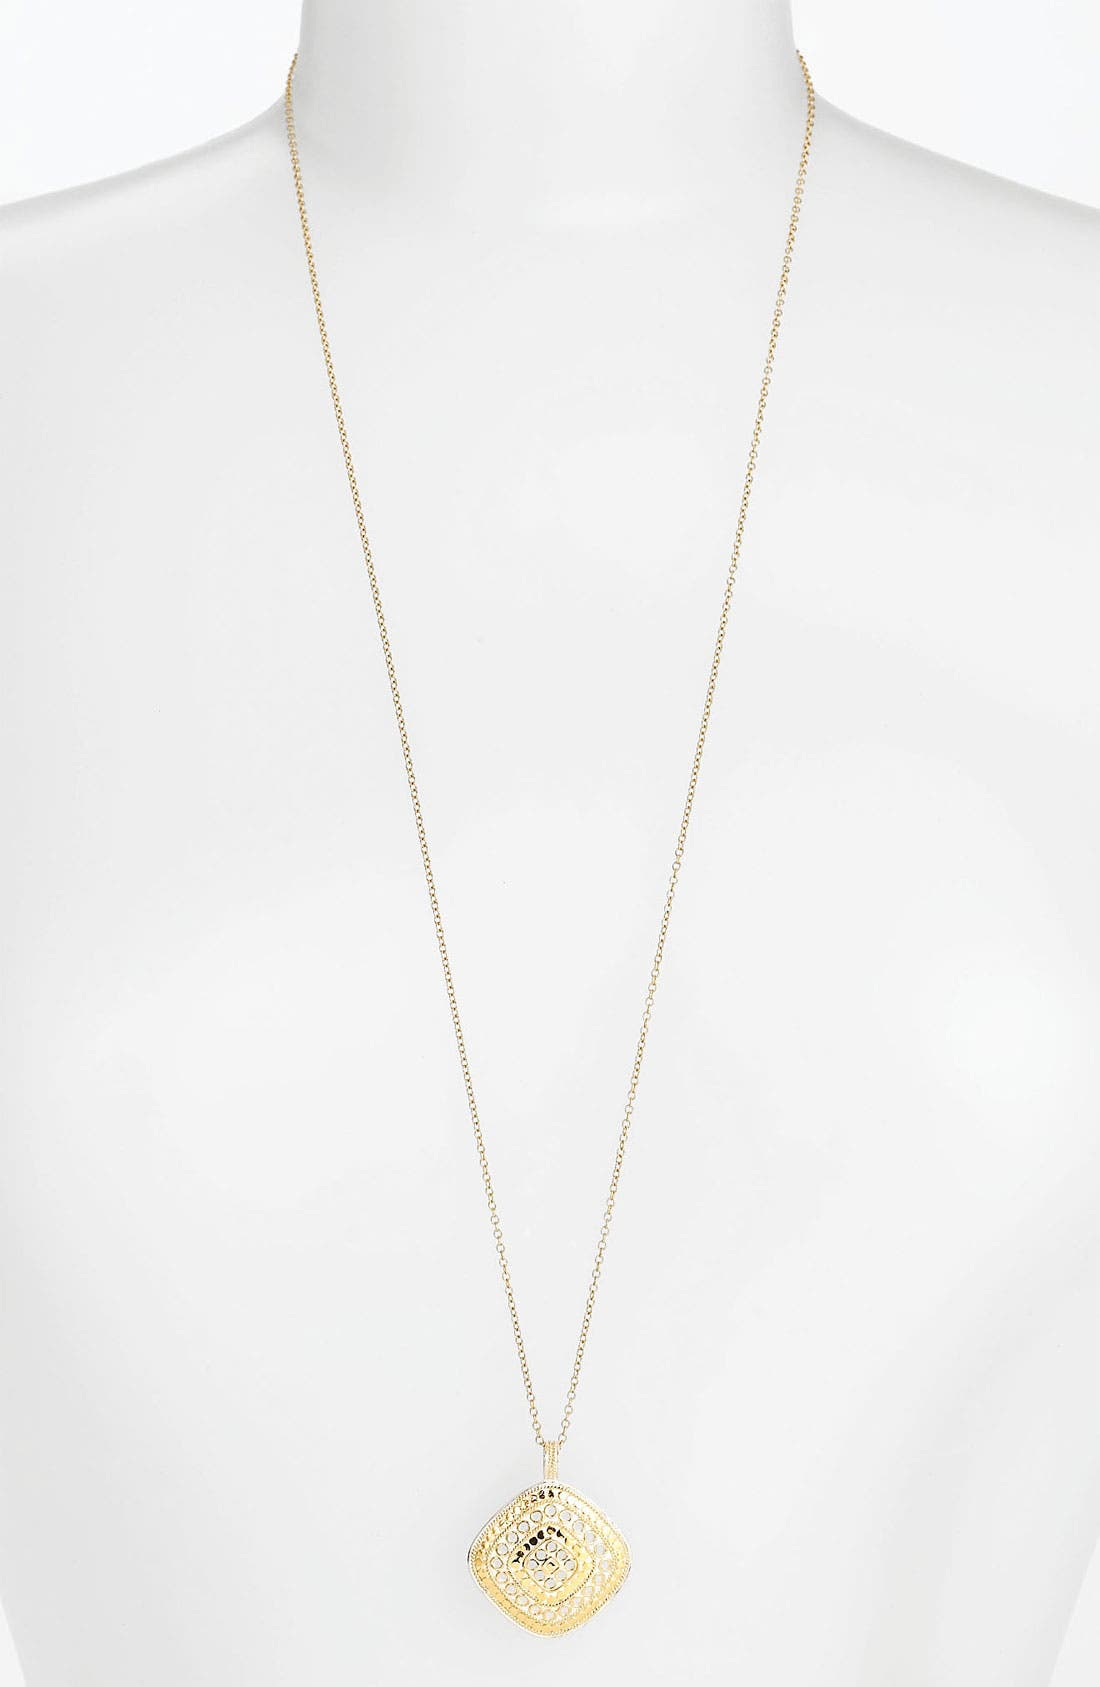 Alternate Image 1 Selected - Anna Back 'Gili' Wire Rimmed Pendant Necklace (Nordstrom Exclusive)